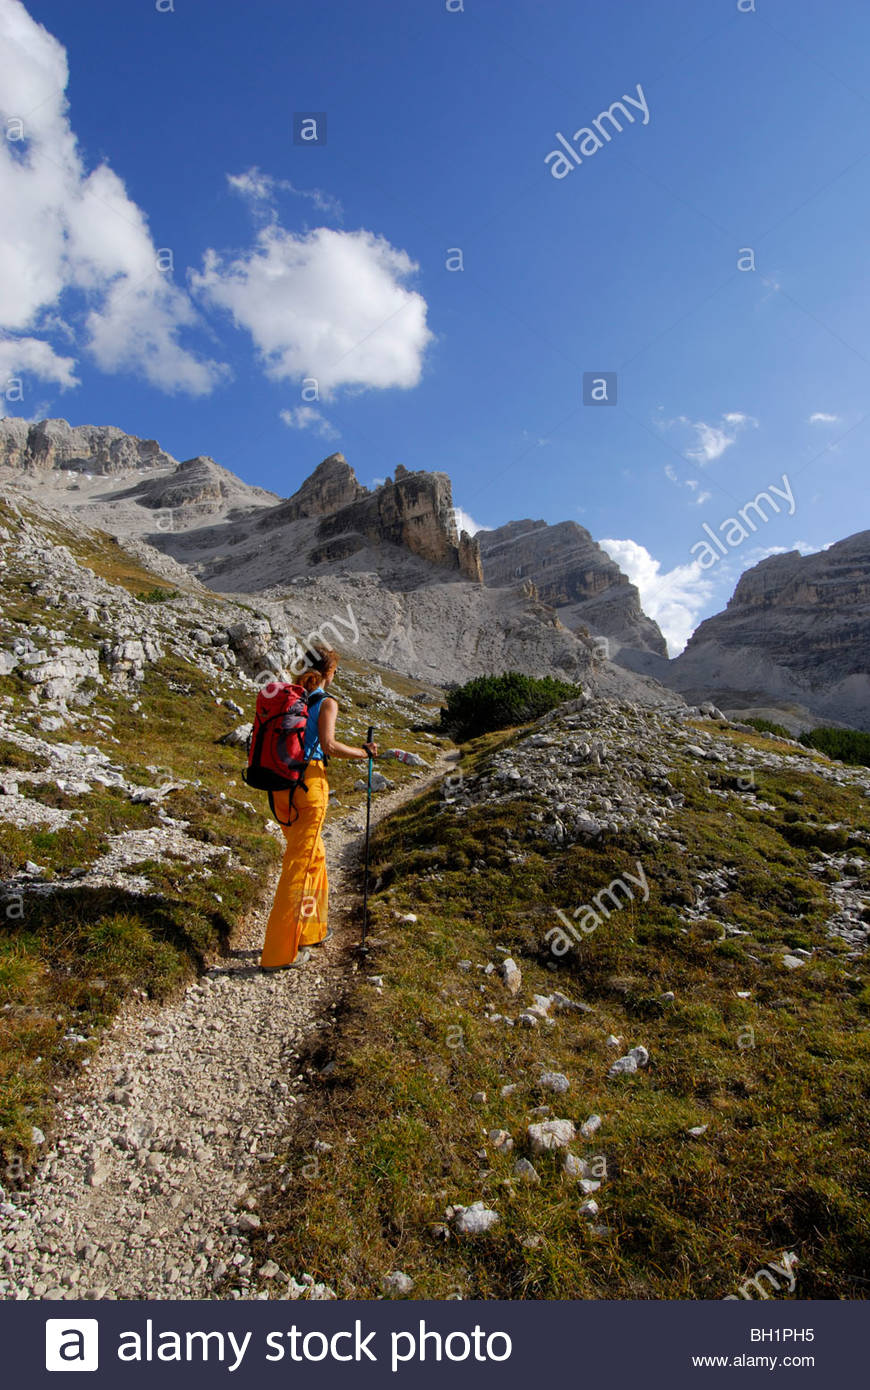 Young woman ascending Forcella di Lech, Alta Via delle Dolomiti No. 1, Parco Naturale Fanes-Sennes, Dolomites, South - Stock Image